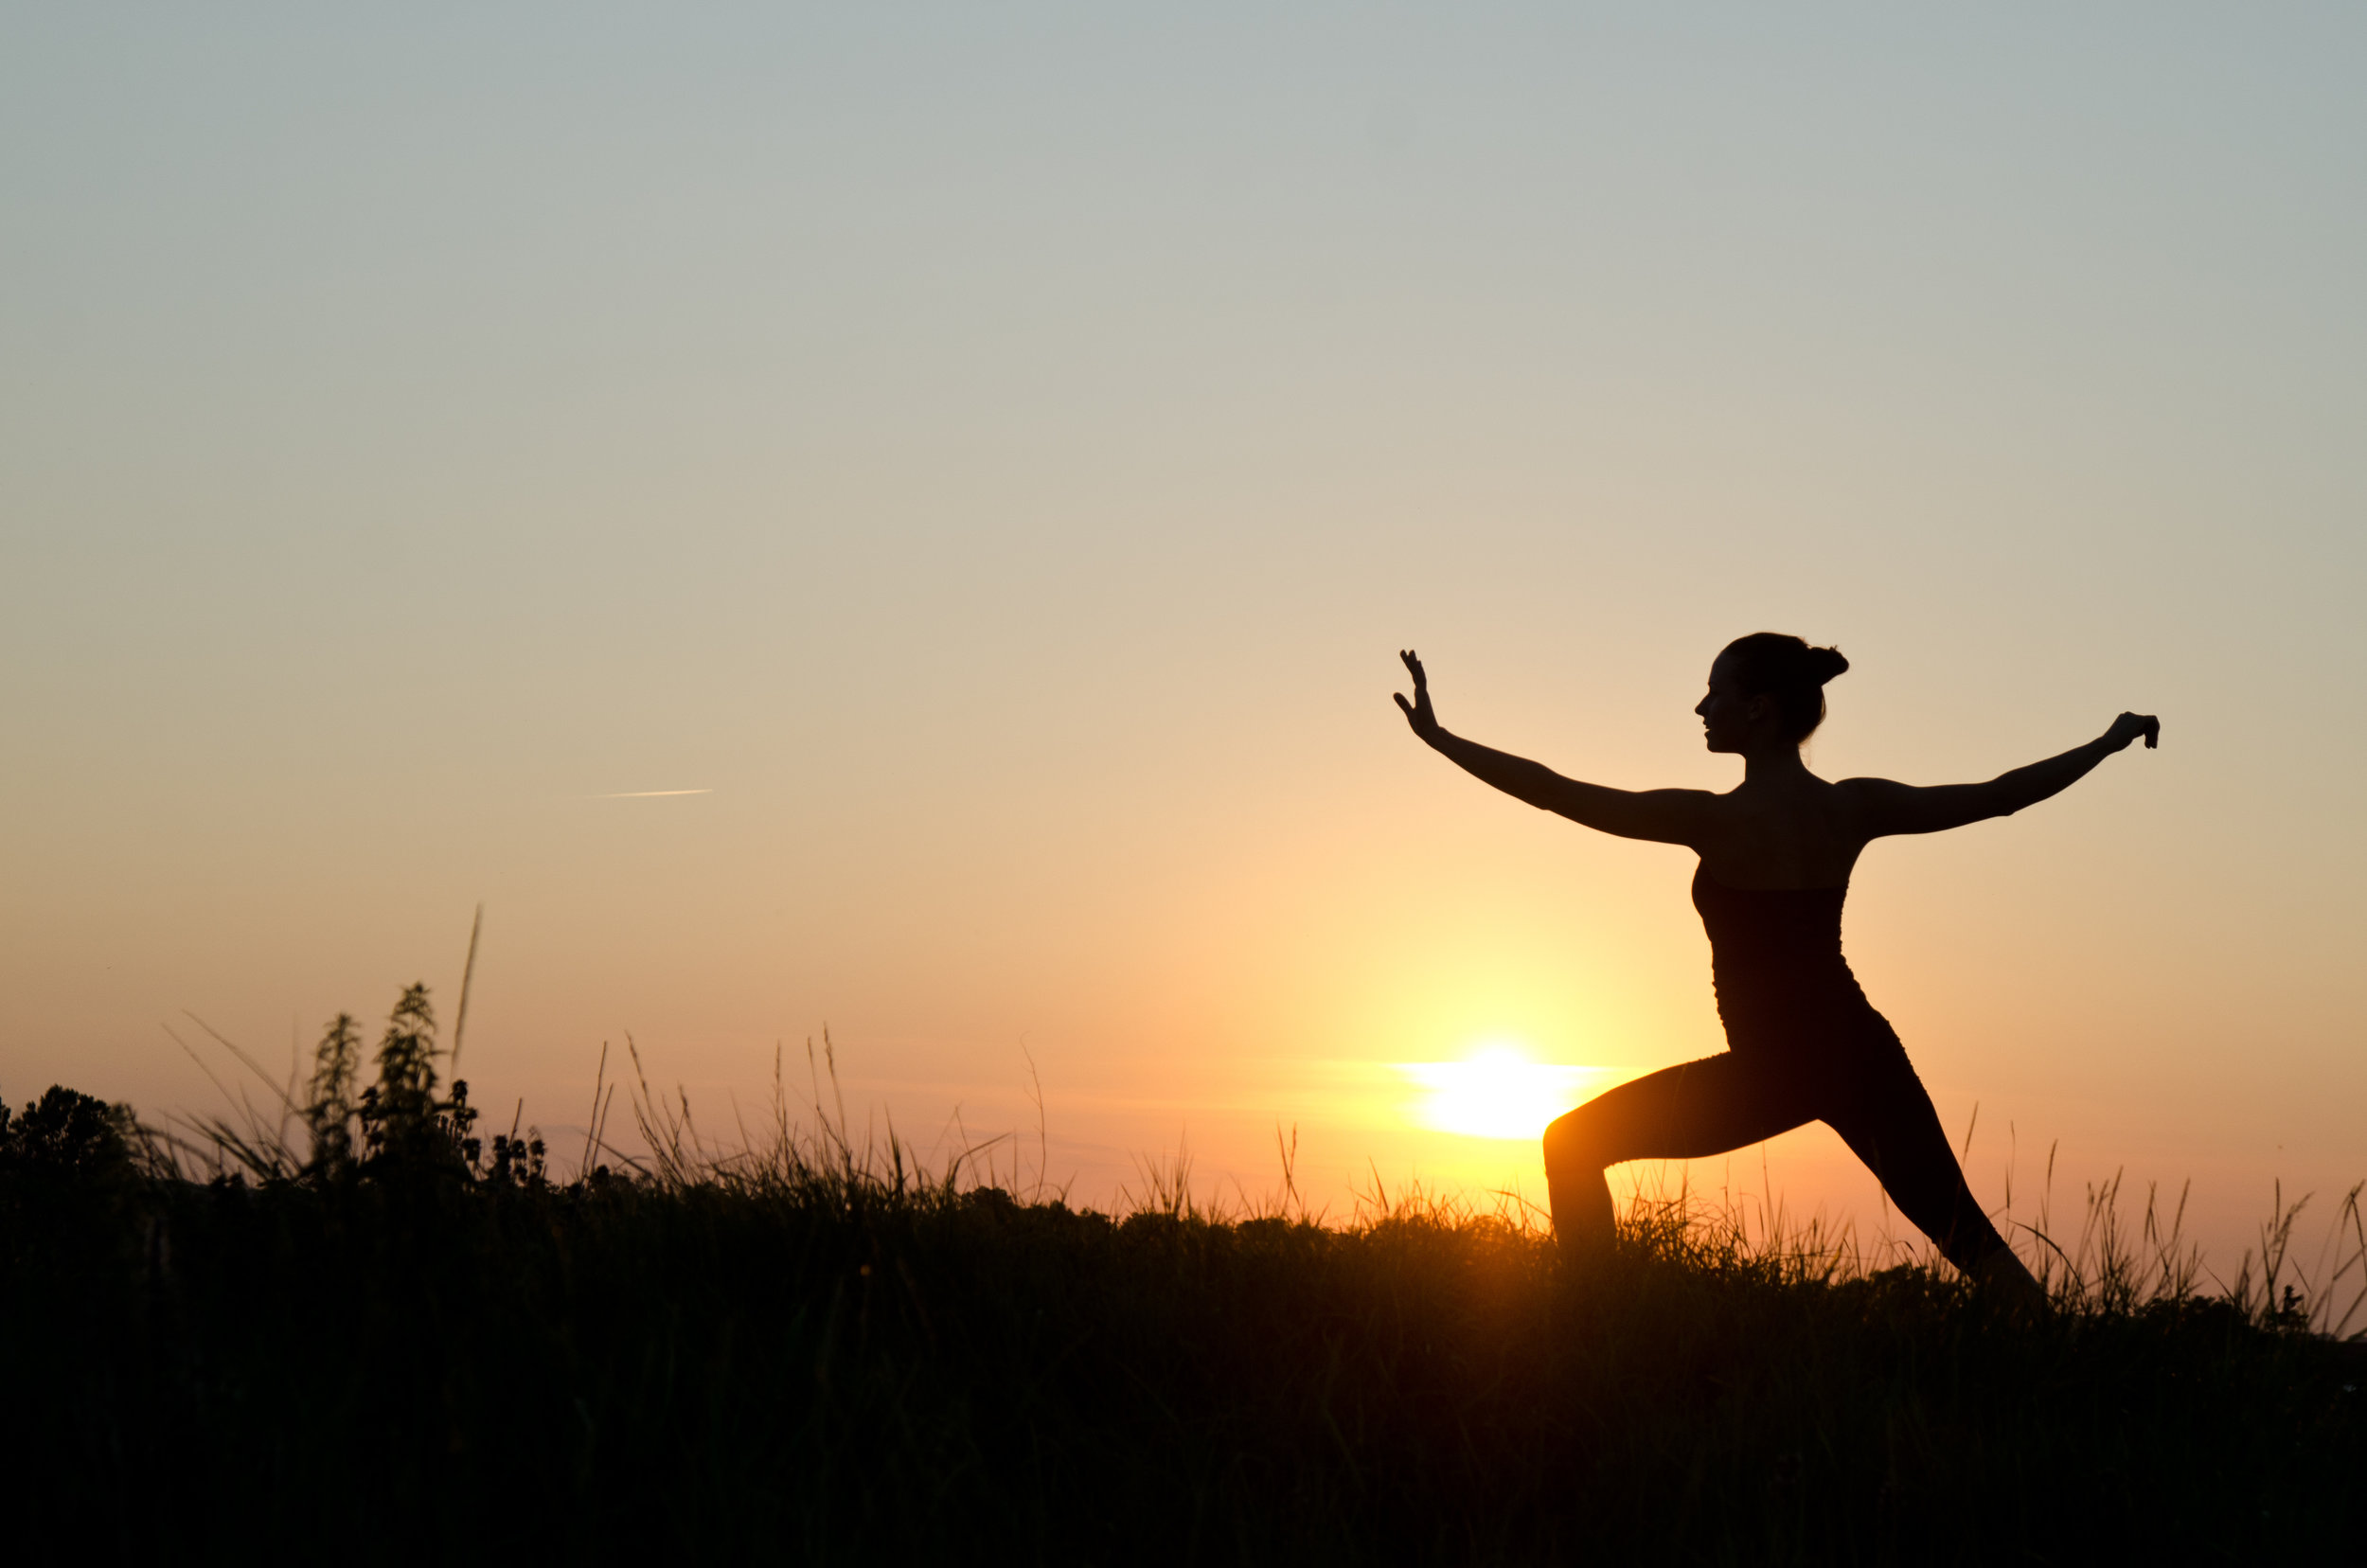 Tai chi can complement, but not replace, Western medicine - It can help you build and move qi in your body. This is best accomplished with regular practice and employing the tai chi principles to your practice.